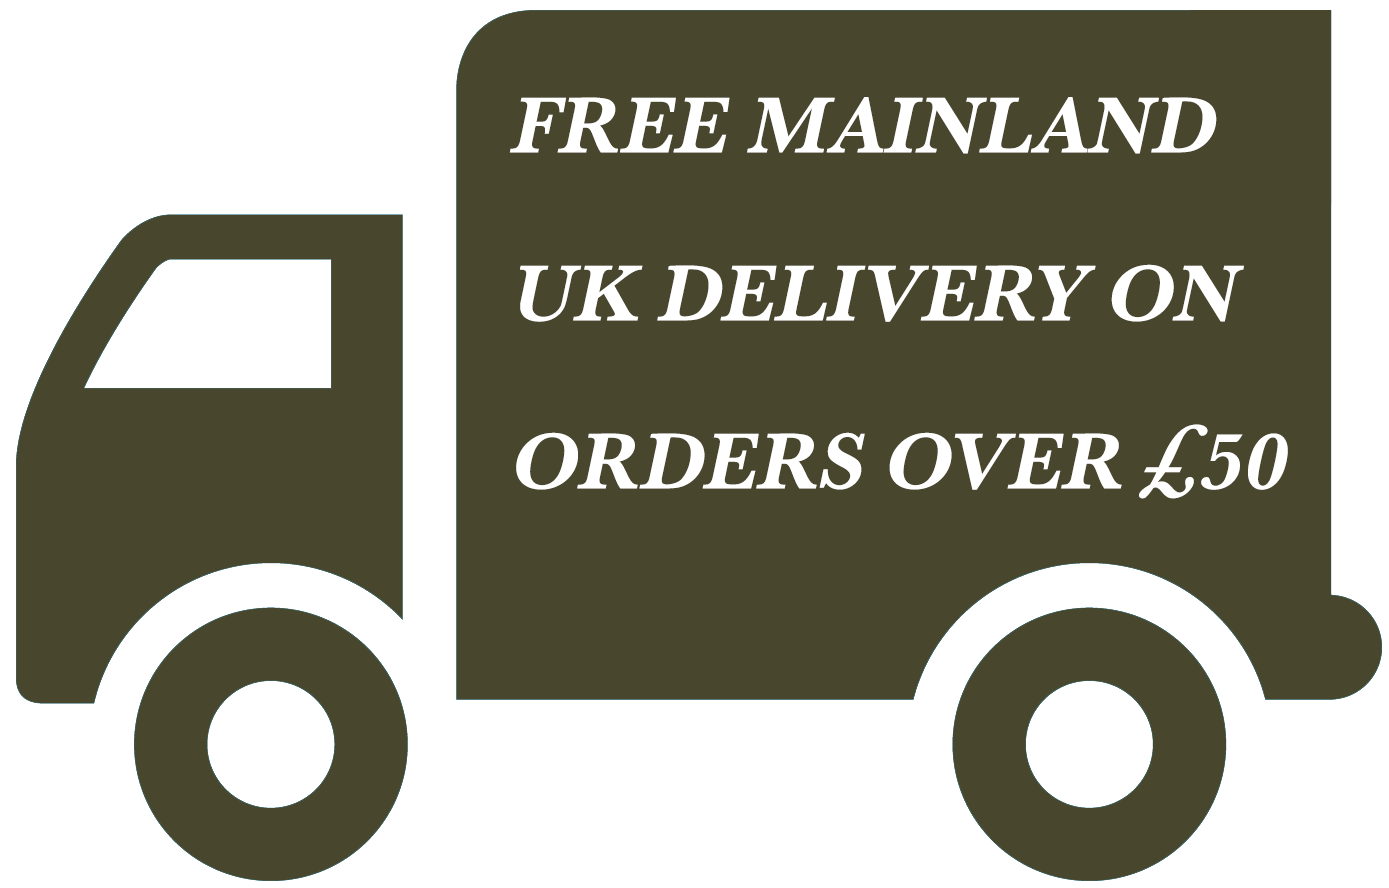 FREE MAINLAND UK DELIVERY ON ORDERS OVER £50